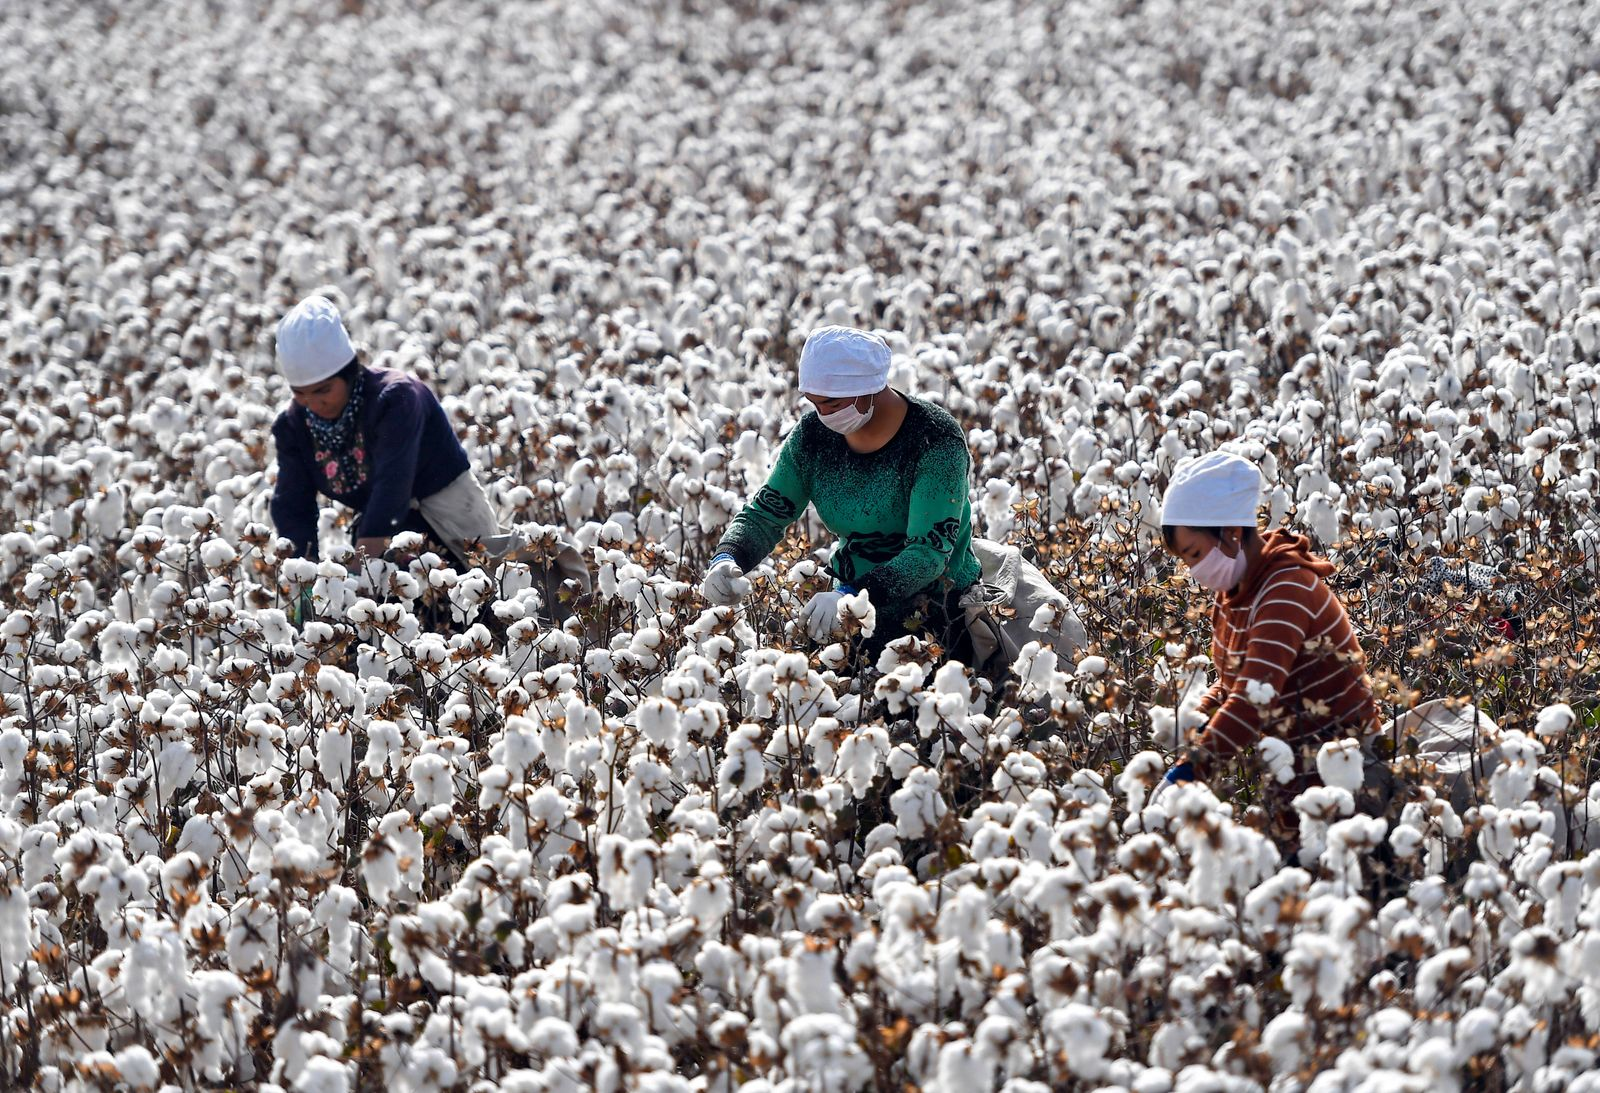 SHAYA, CHINA - OCTOBER 21: Farmers pick cotton during the harvest on October 21, 2019 in Shaya County, Xinjiang Uygur Au